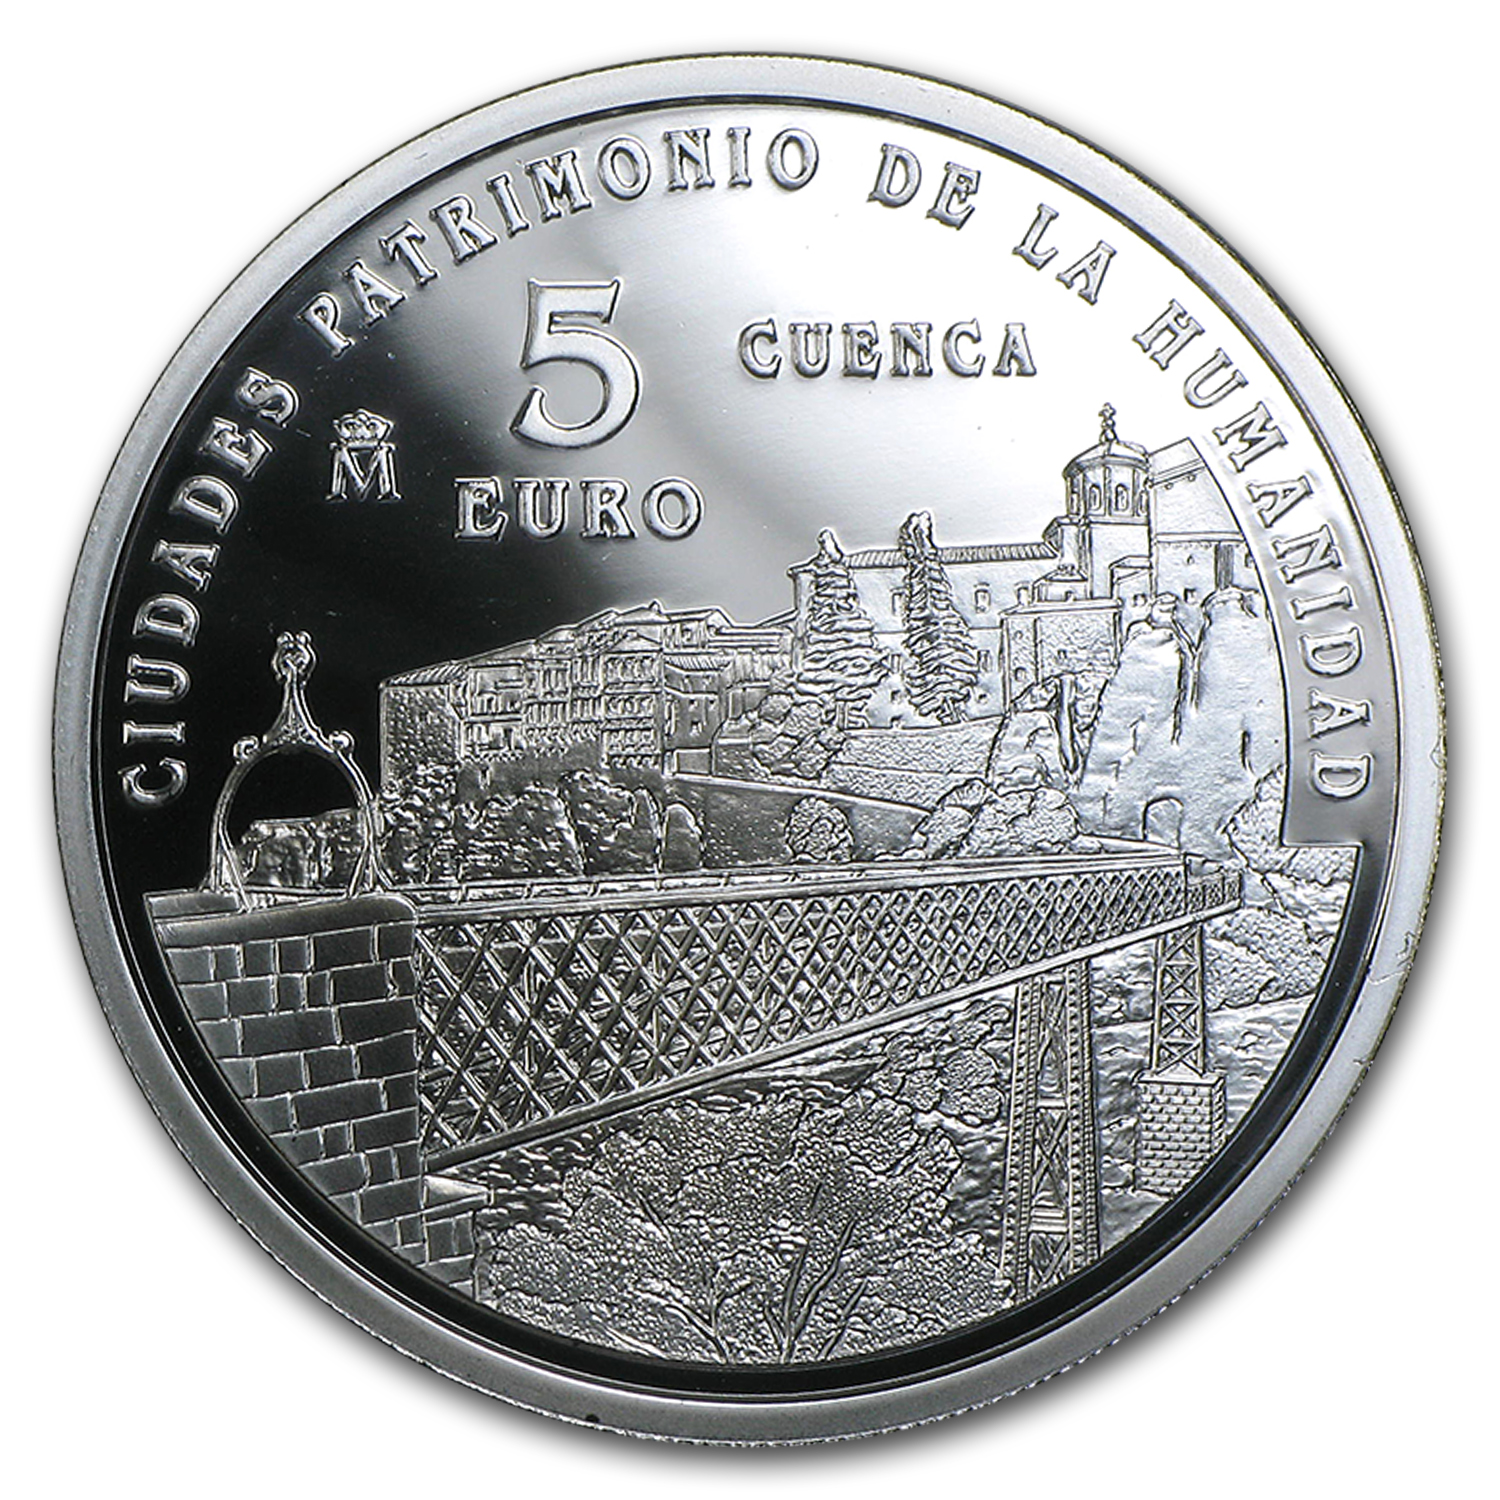 2015 Proof Silver €5 UNESCO Cuenca